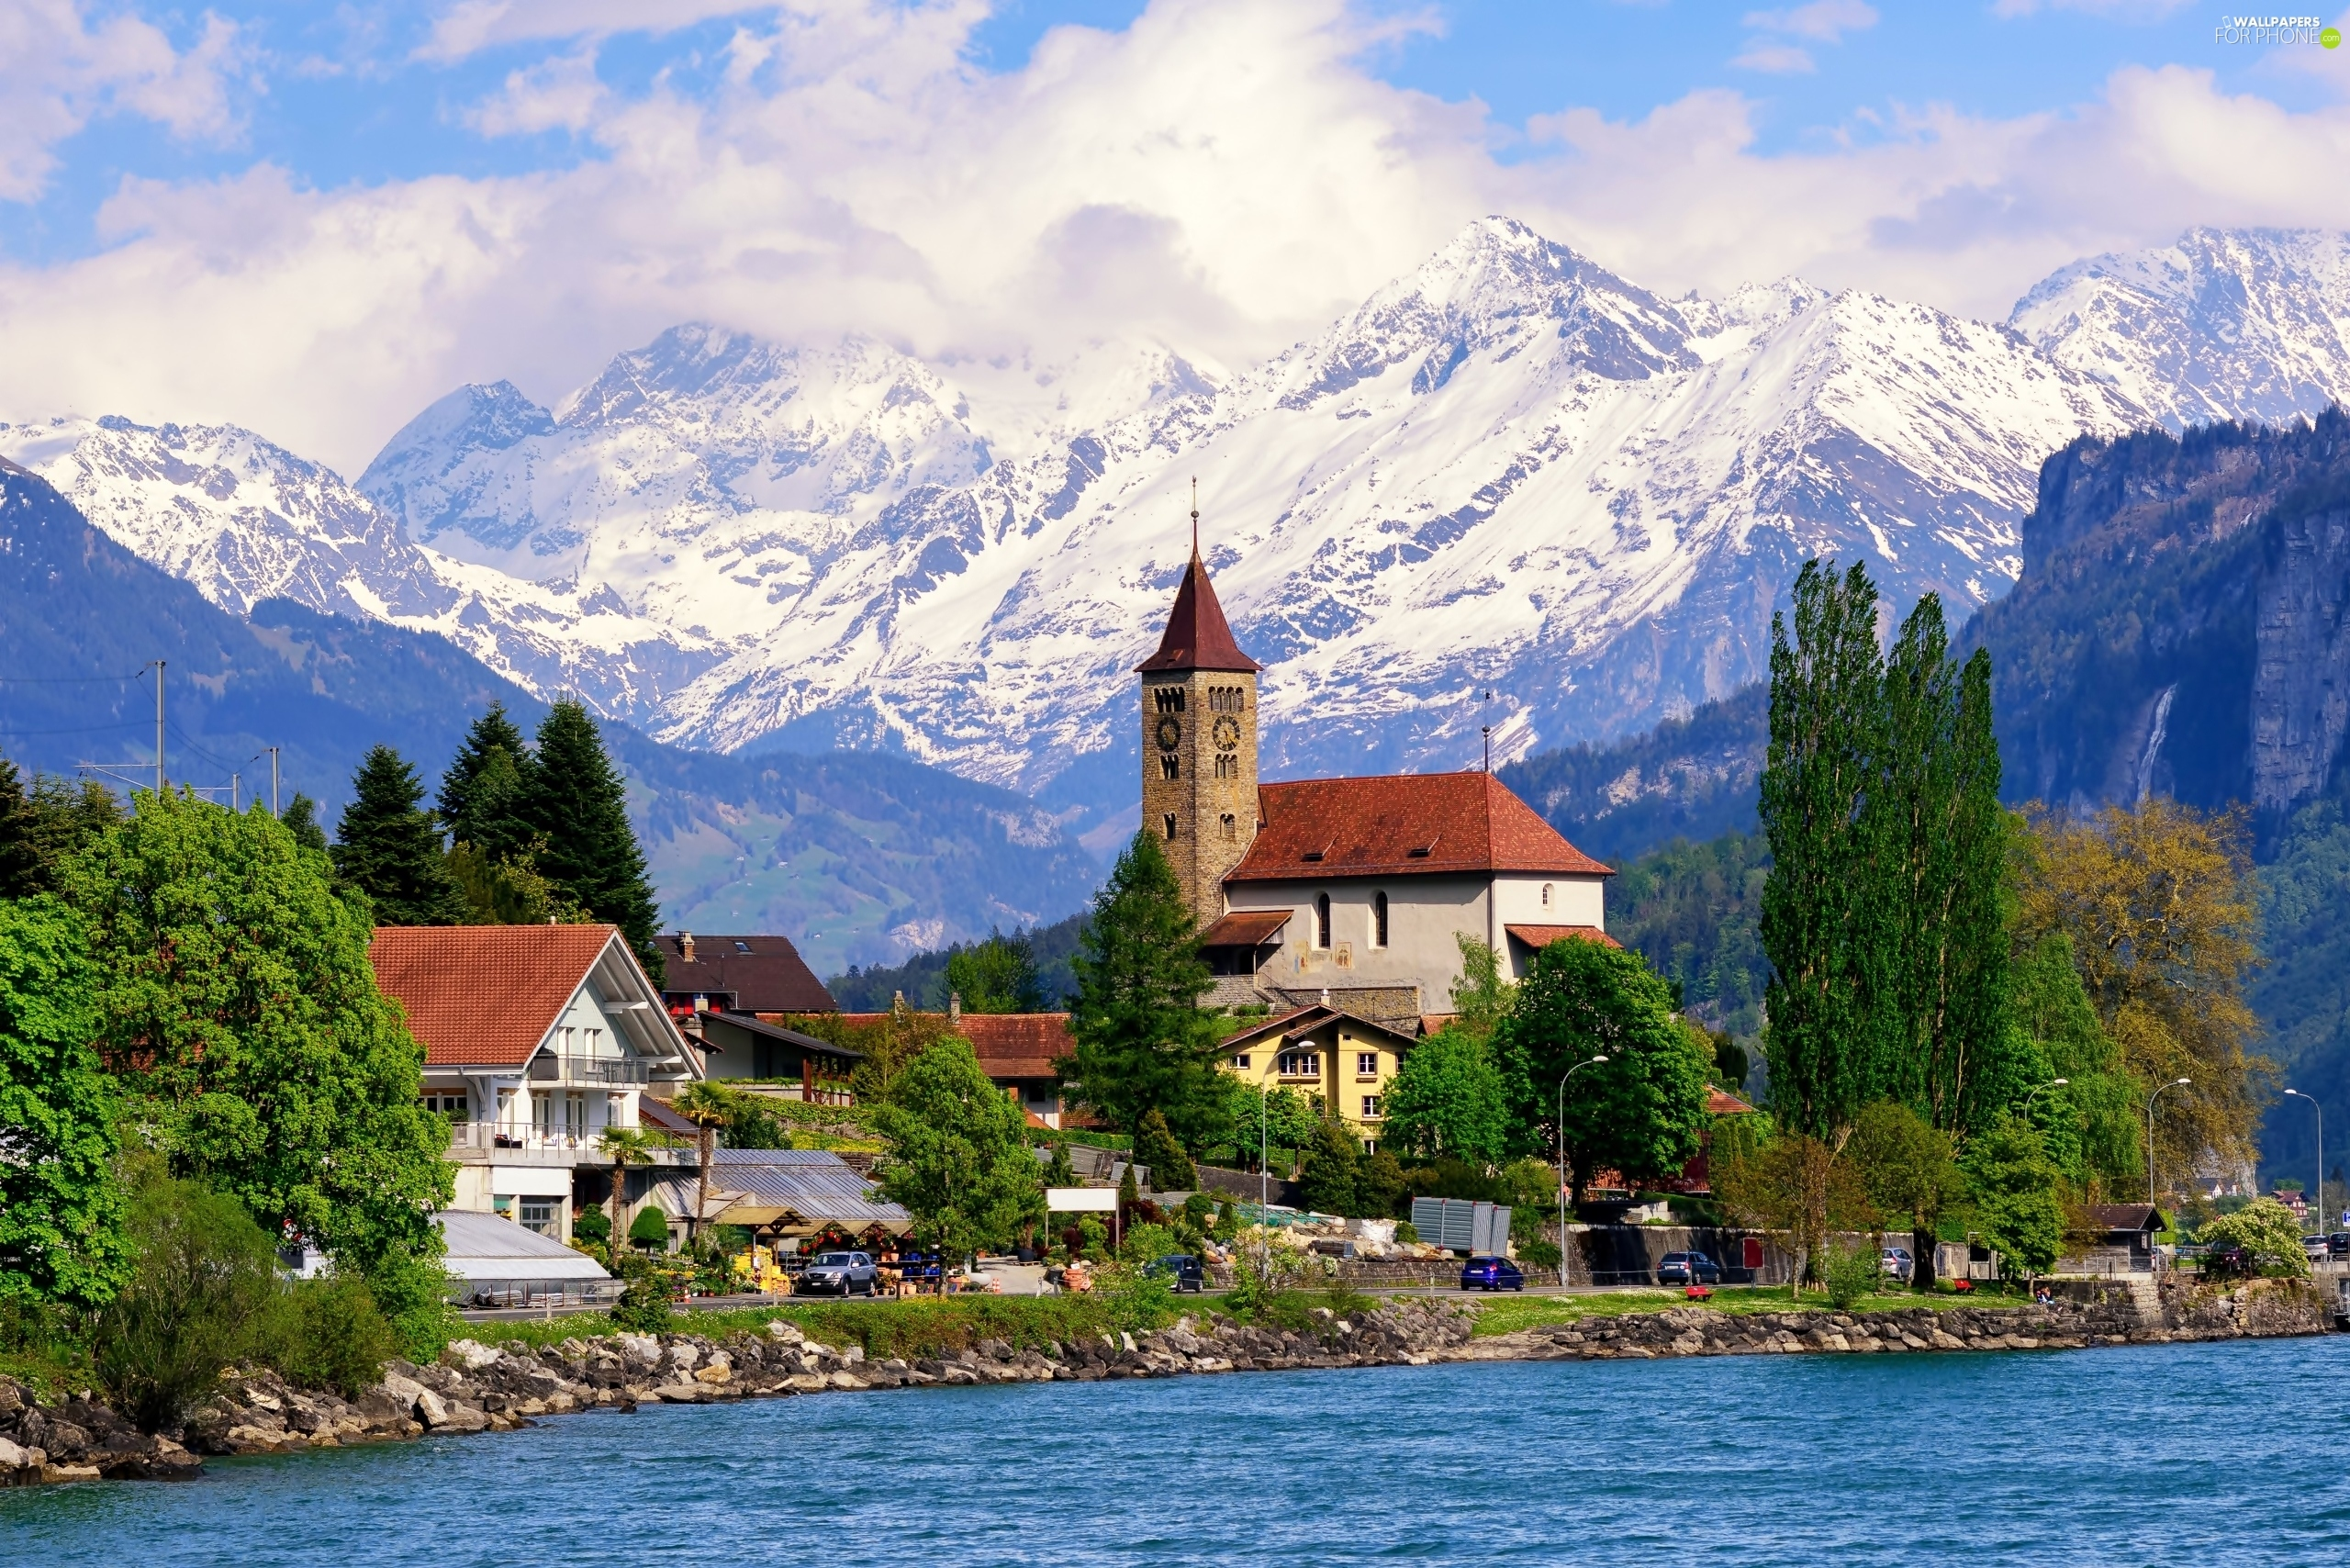 Lake Village Alps Switzerland Mountains Houses For